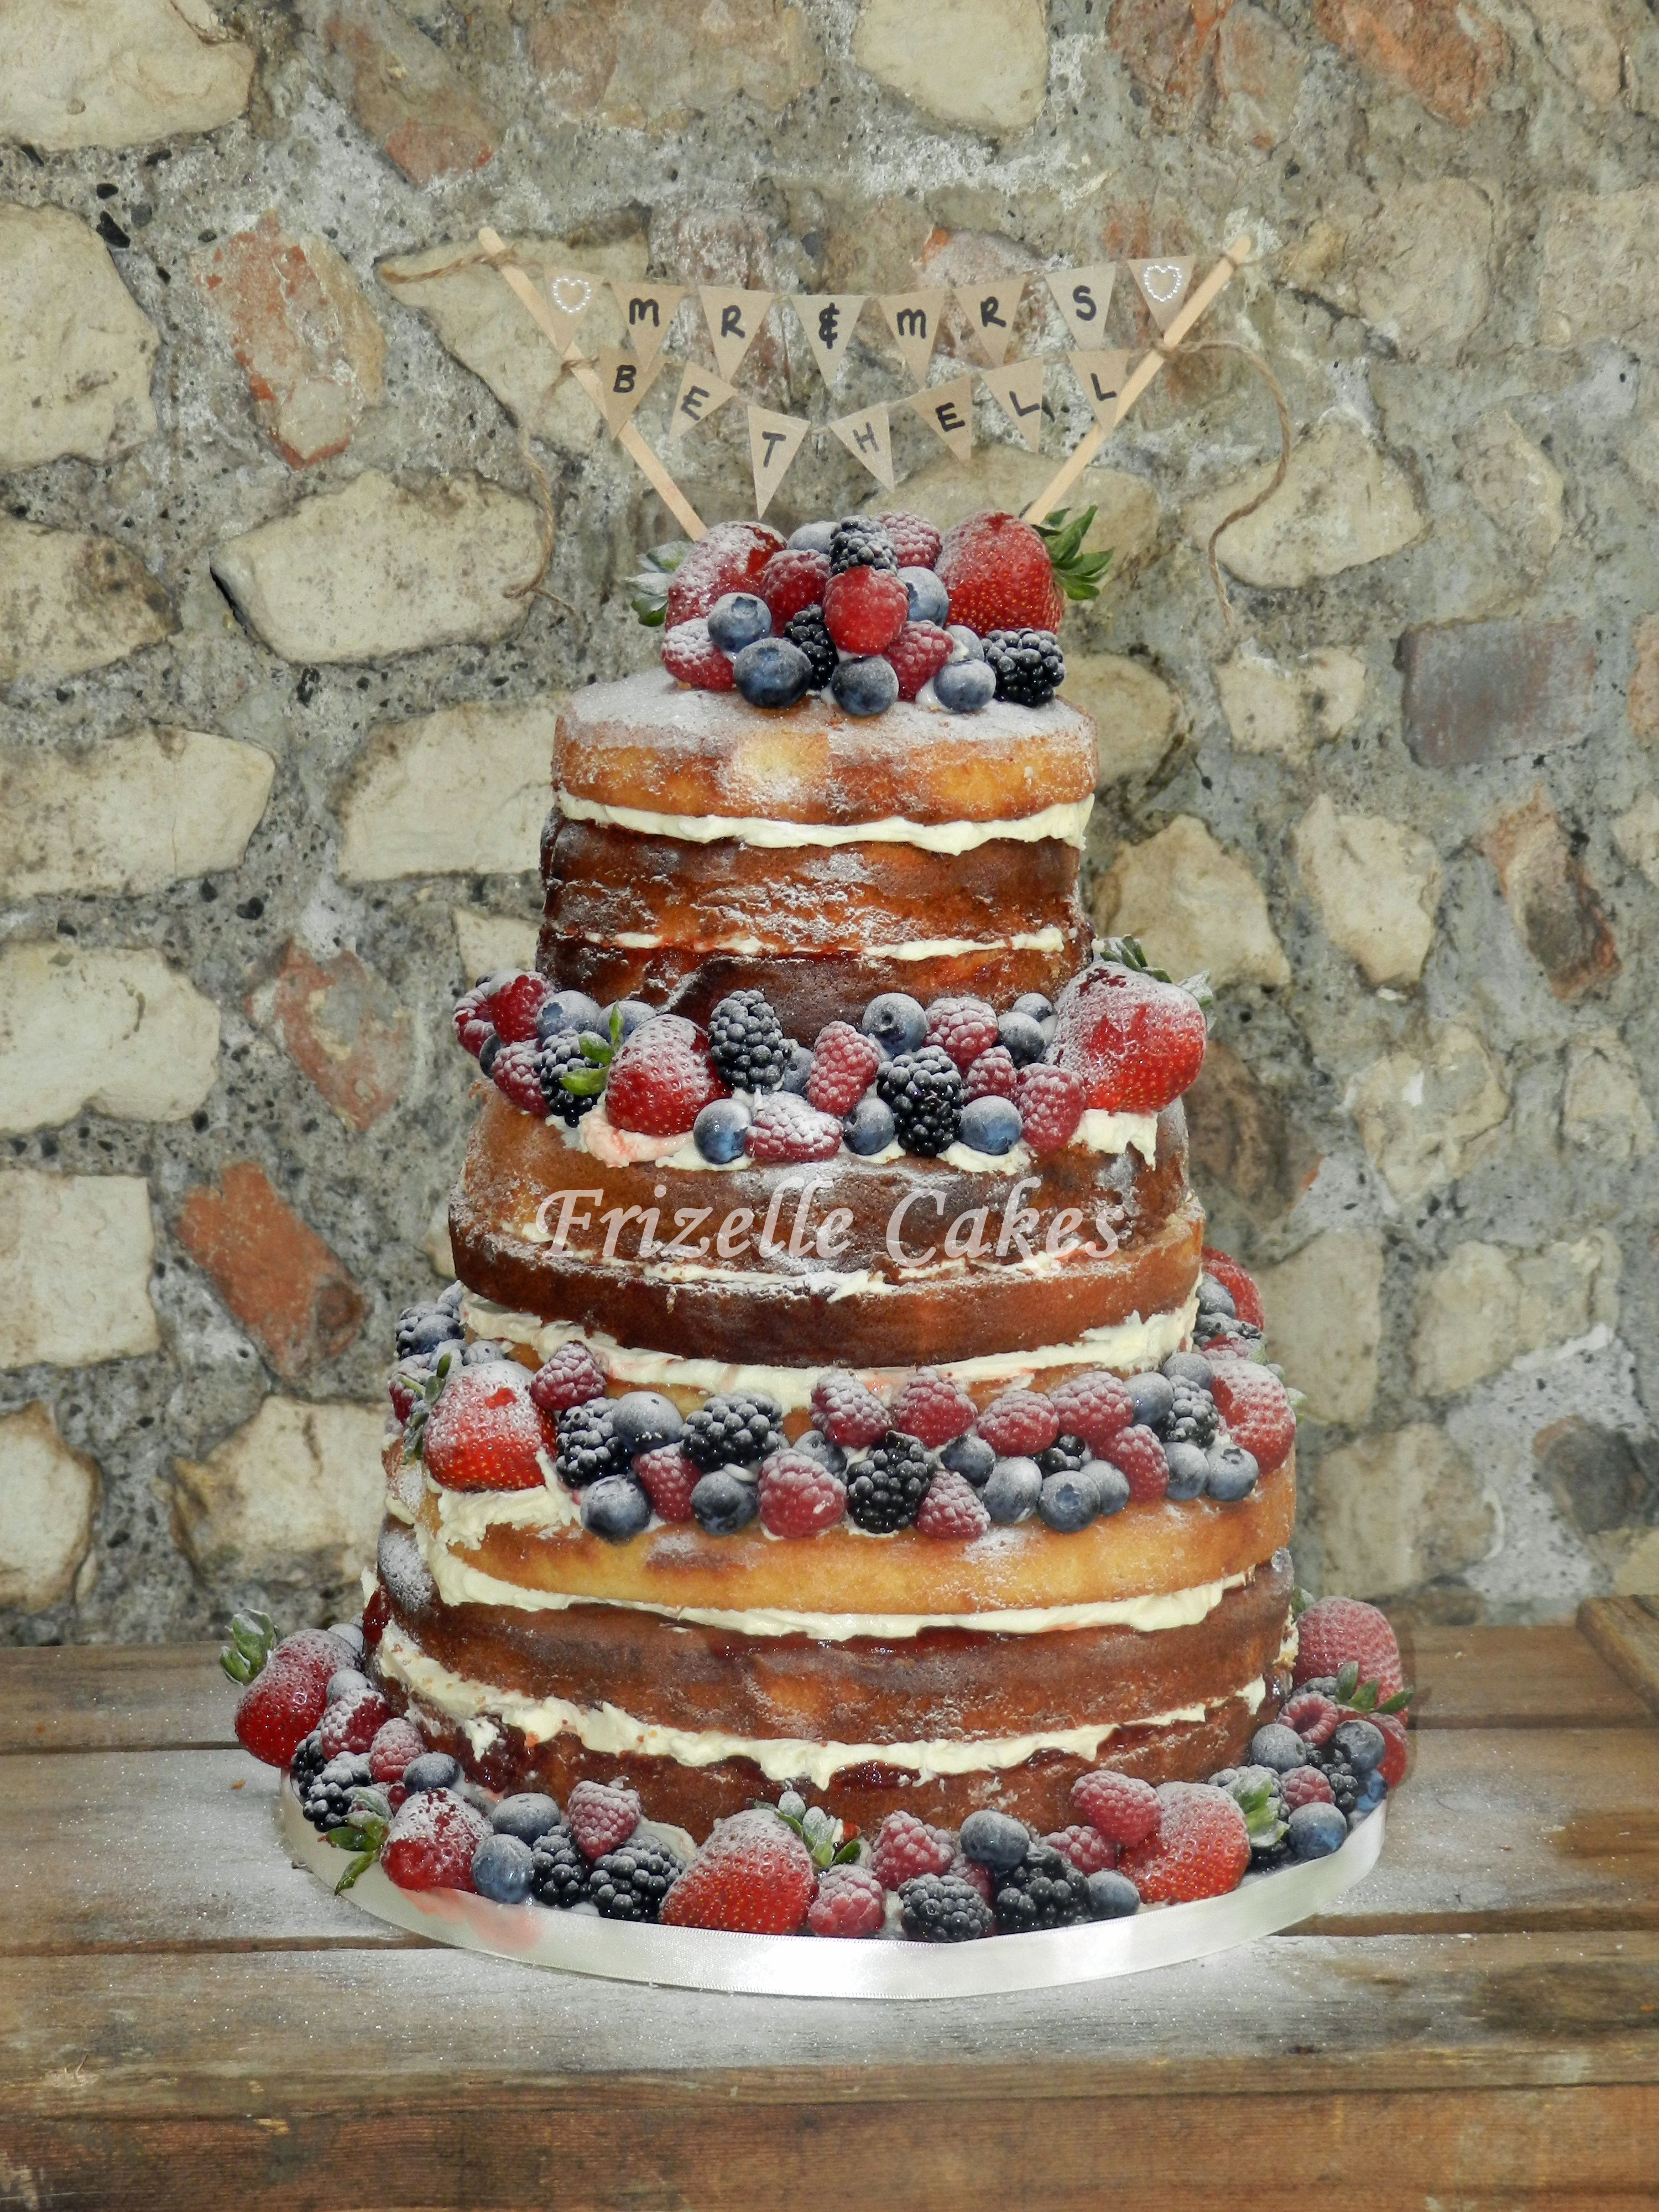 bare sponge wedding cakes a quot bare quot or quot quot wedding cake piles high with fresh 11074